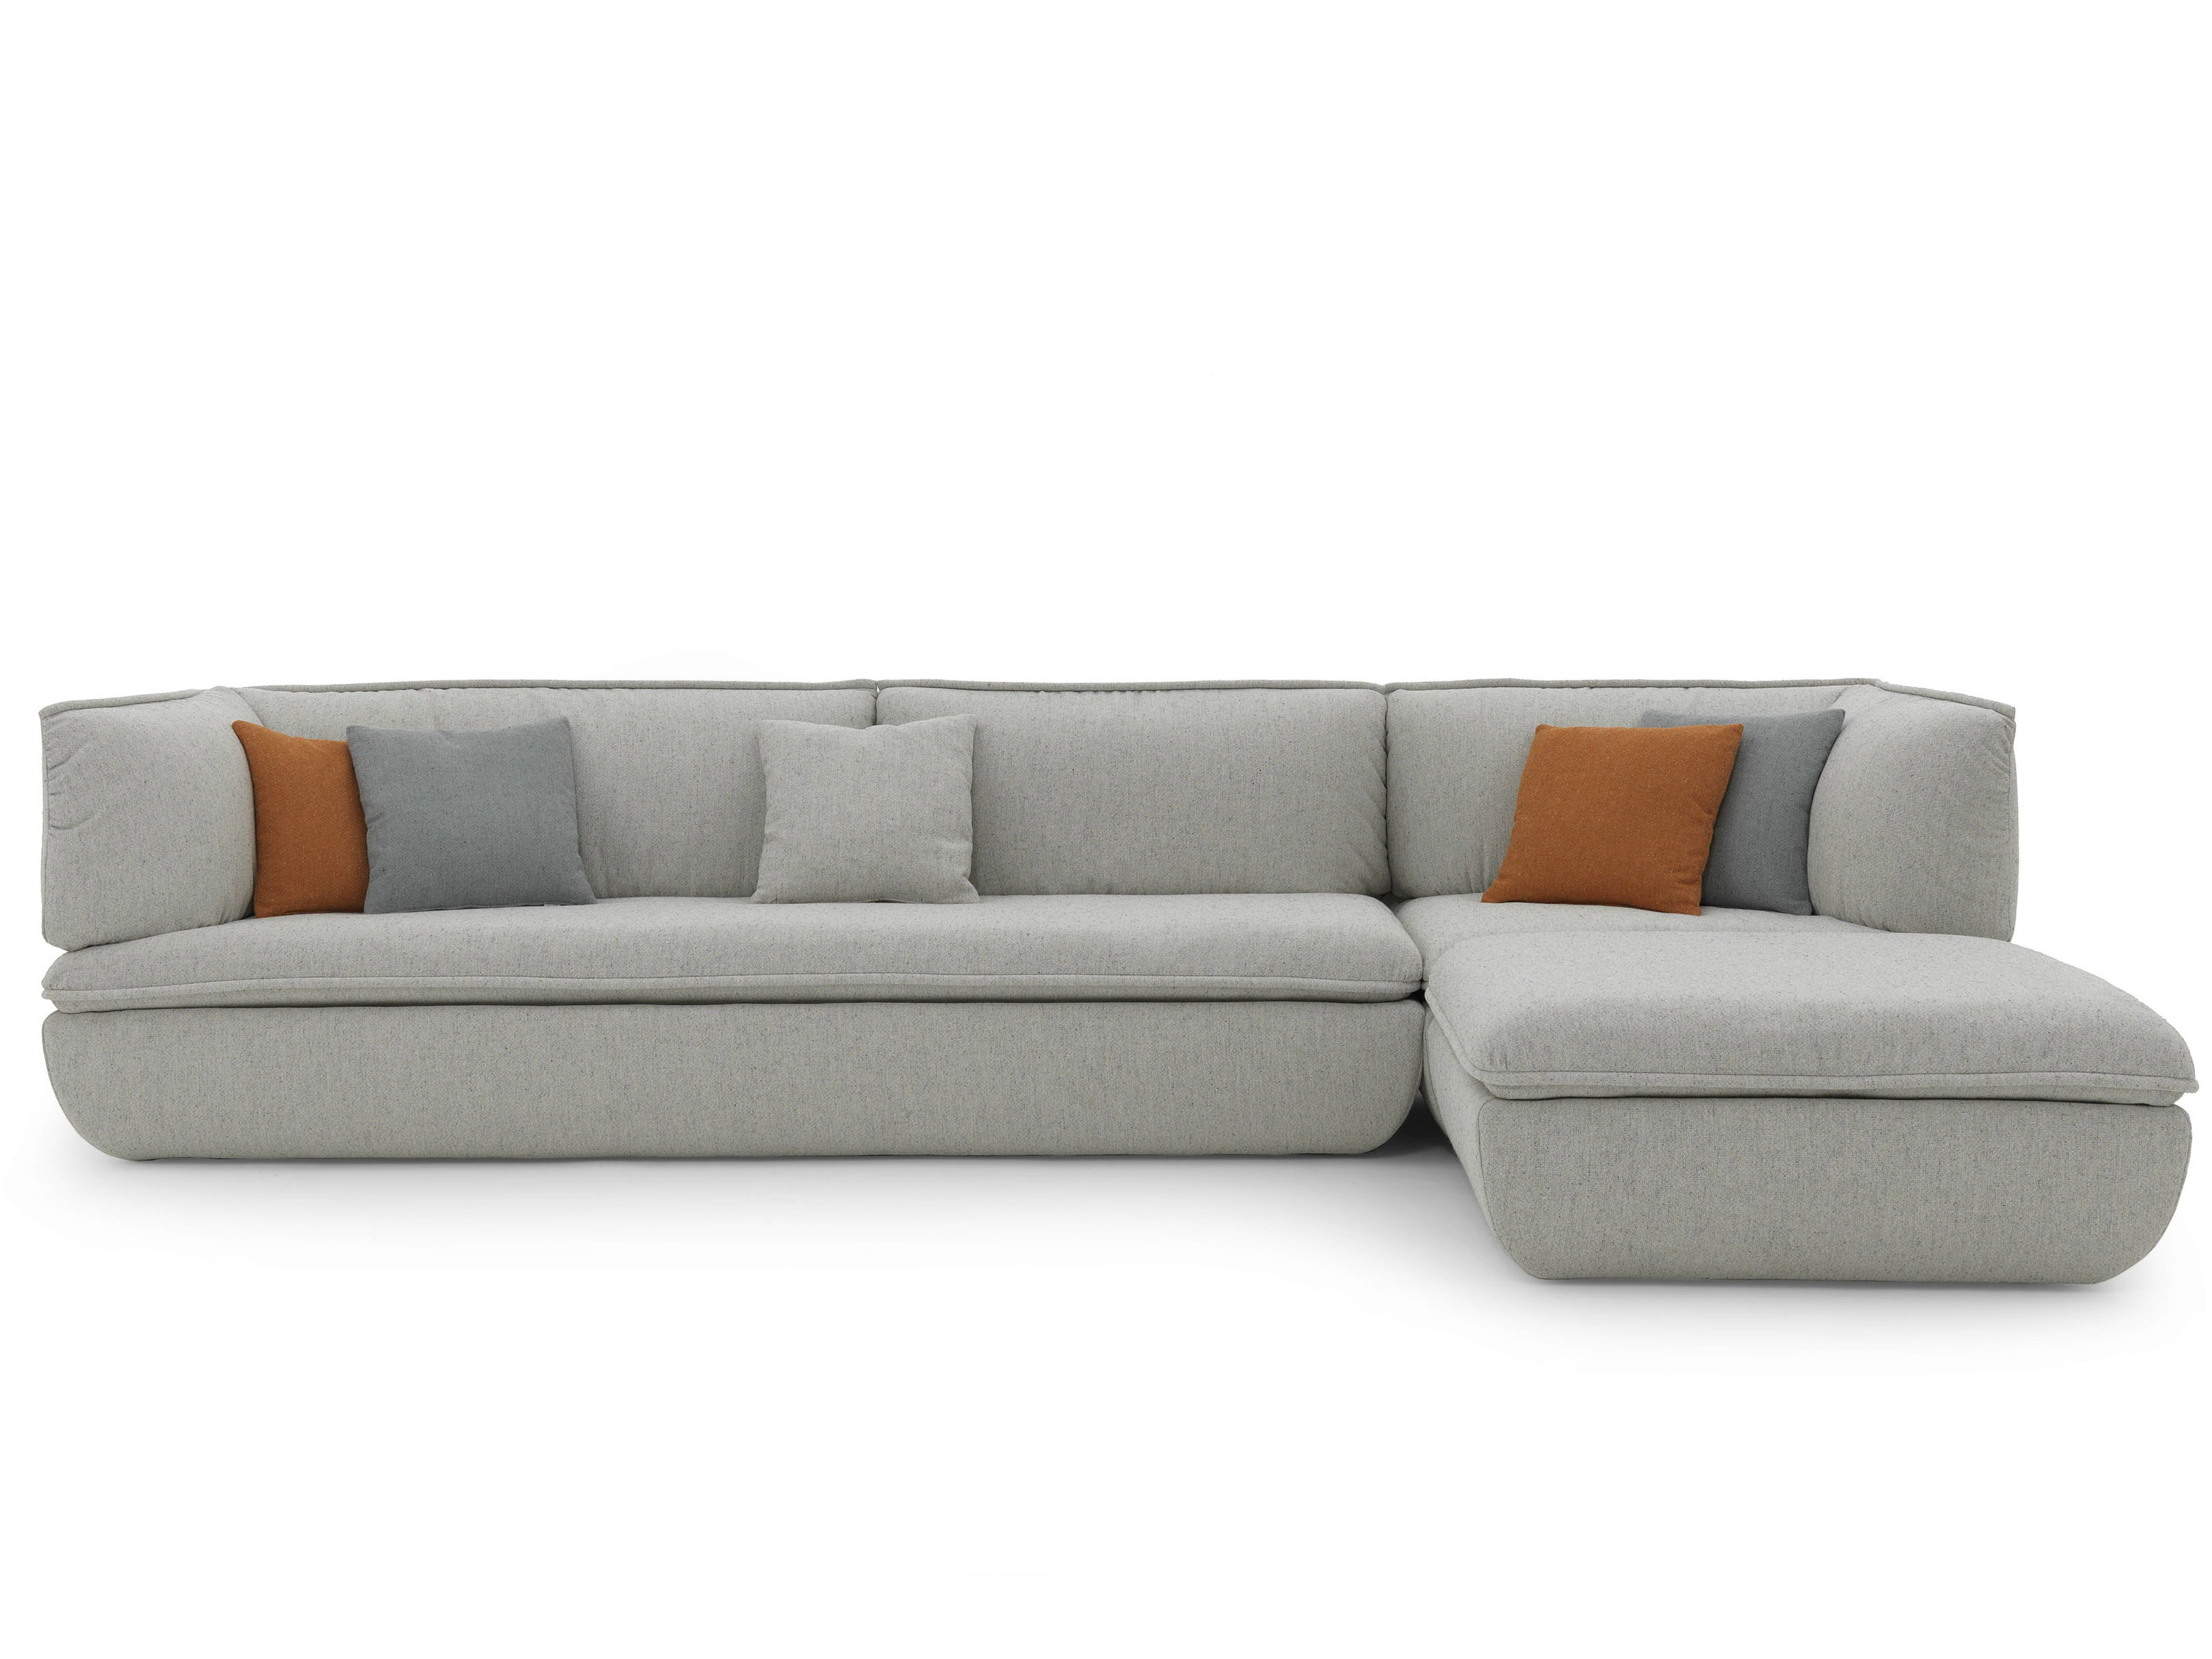 Mimic Modular Sofa by Monica Förster for De Padova